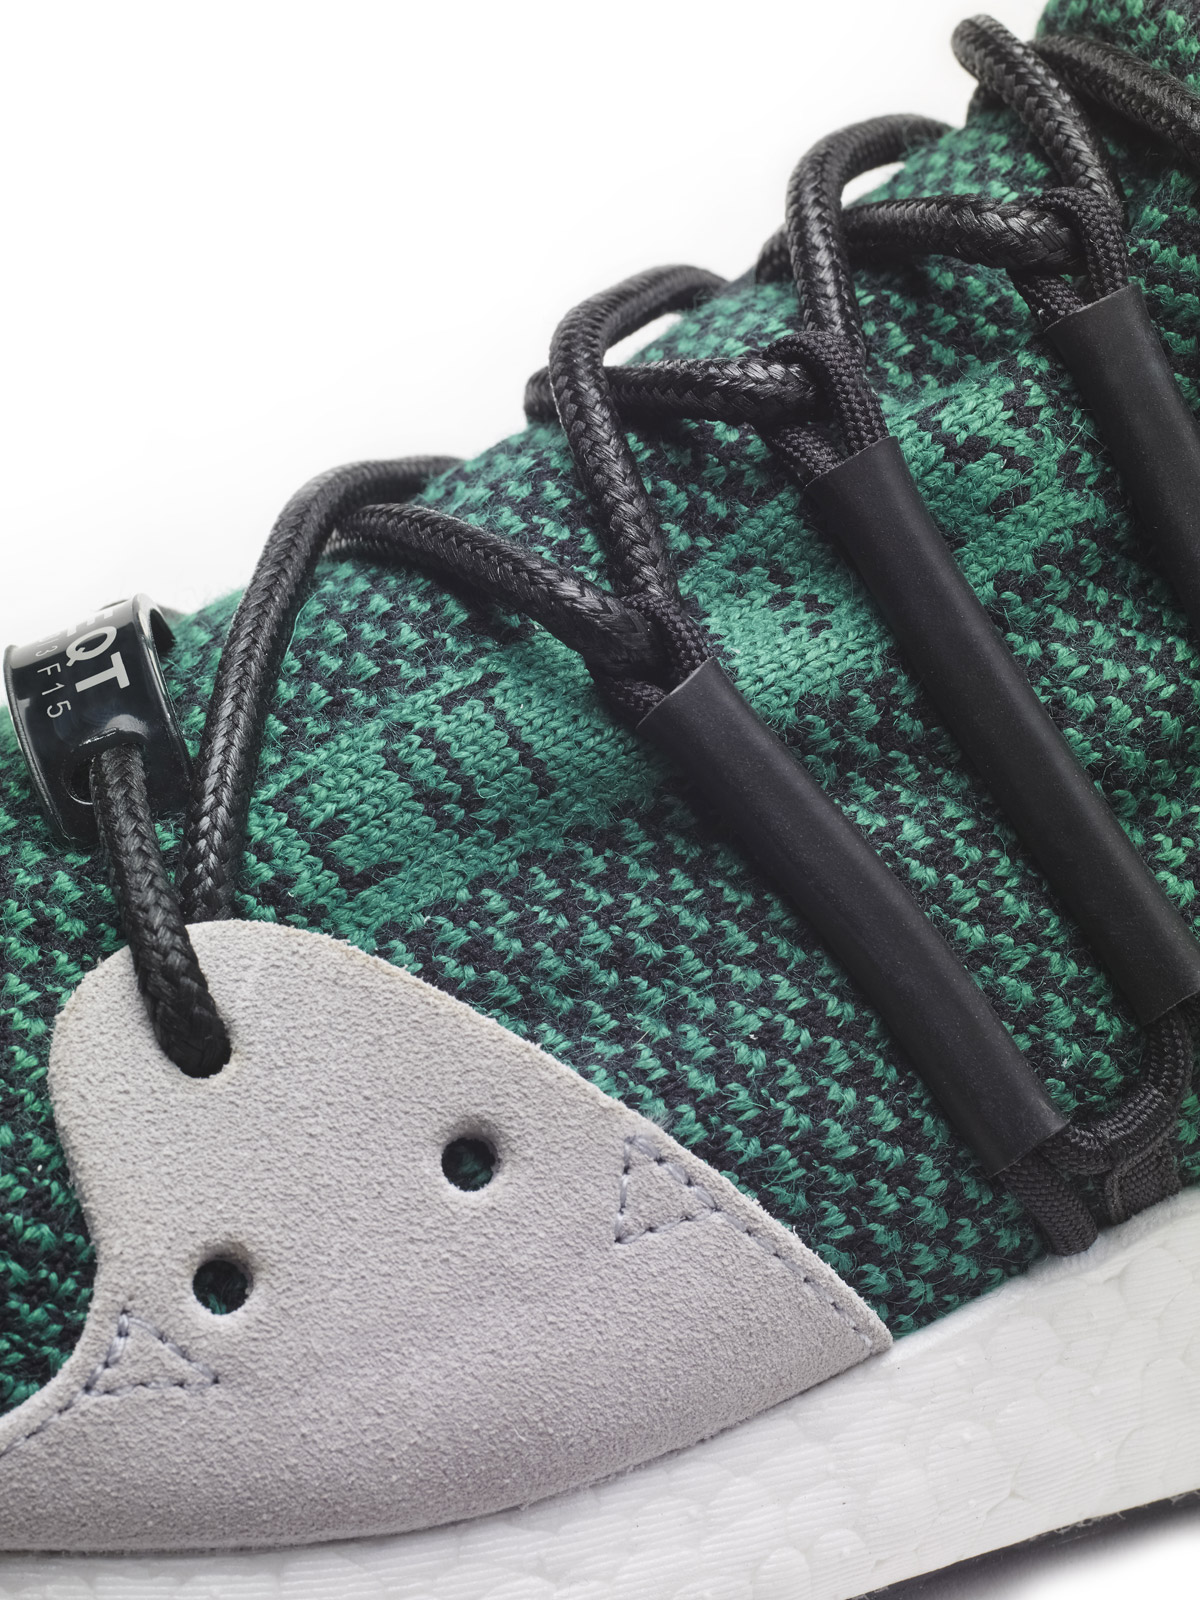 adidas Originals Statement EQT #3F15 Collection-2